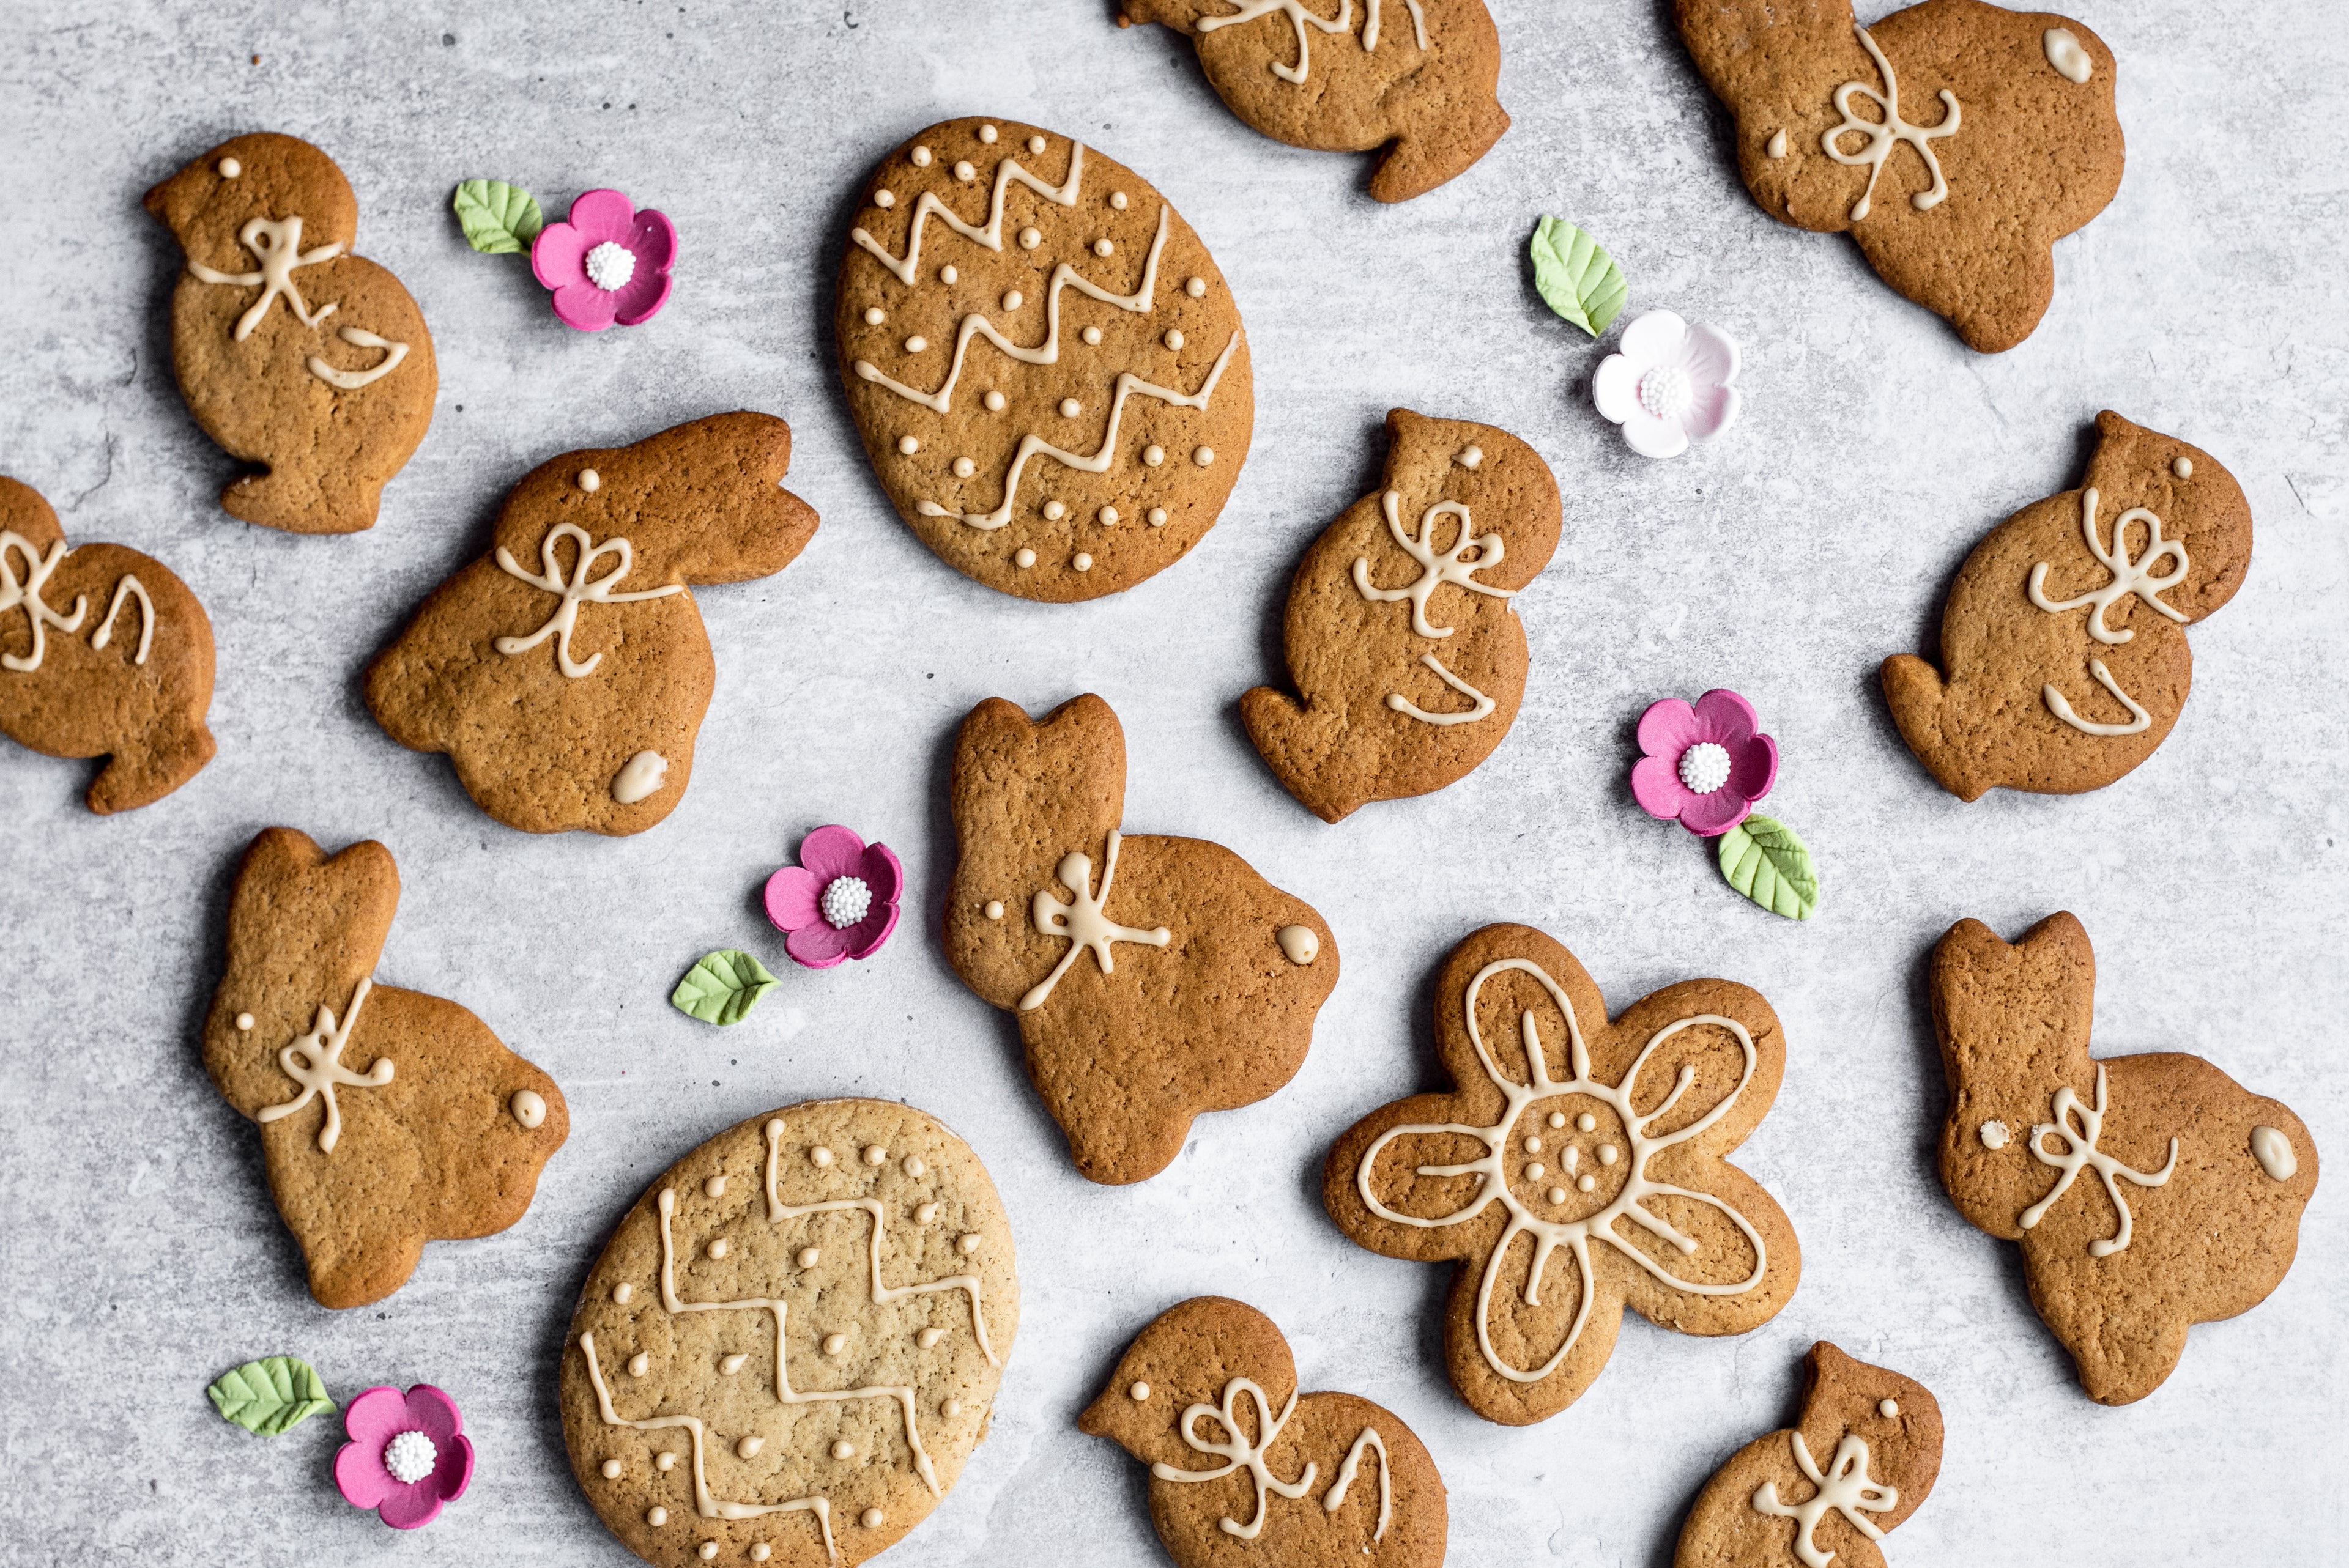 Easter shaped ginger biscuits laid flat on a surface